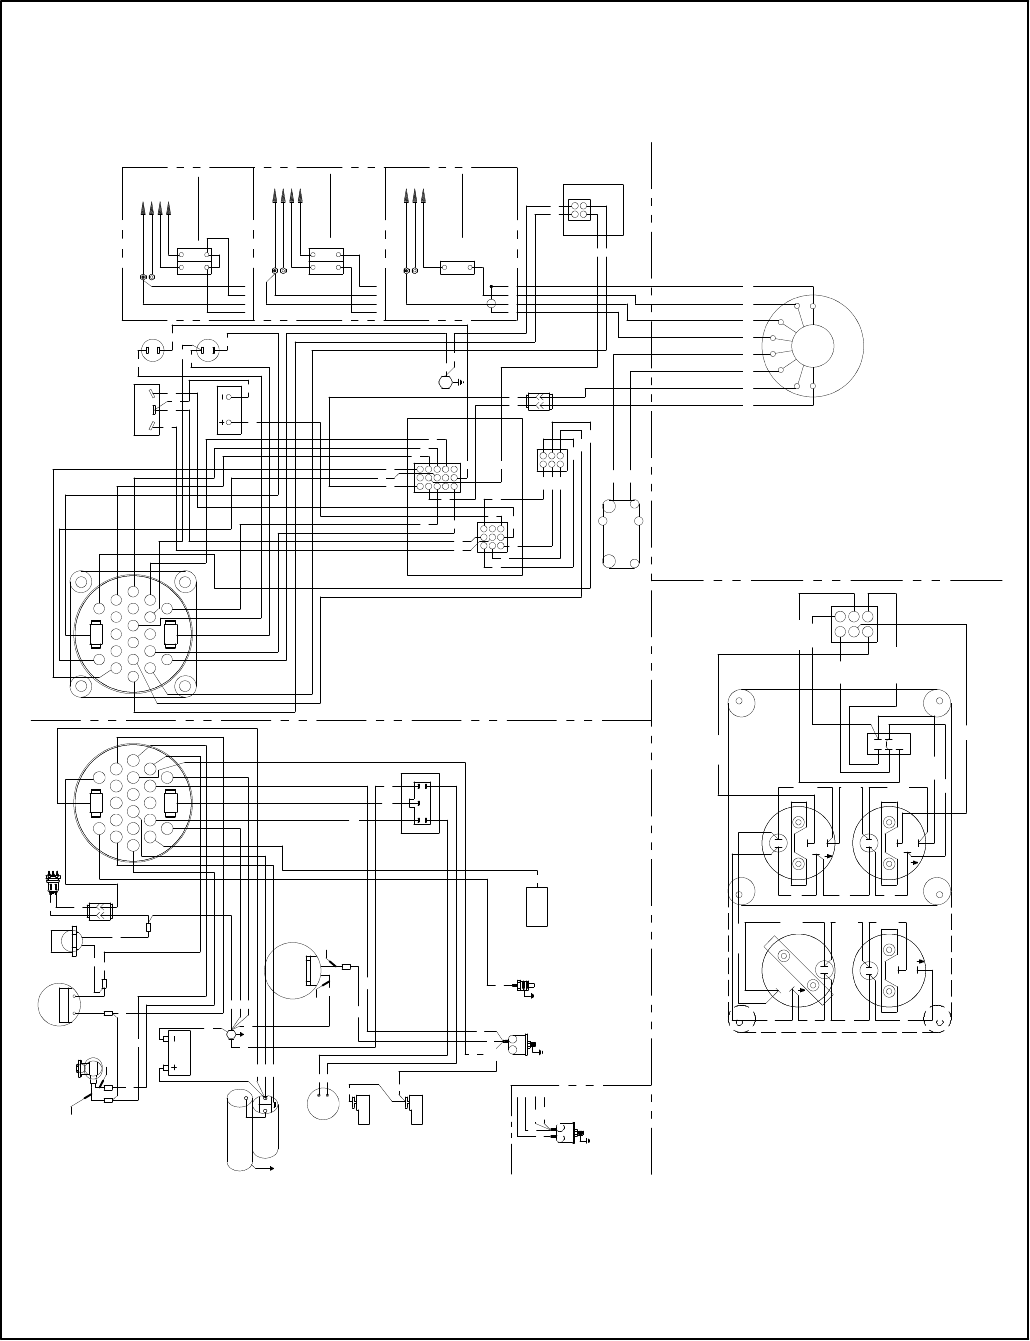 a8fdd3f3 7368 43a4 a491 42a86ec68384 bg3a page 58 of kohler portable generator 3 5cfz, 4cz, 5cfz, 6 5cz user kohler generator wiring diagrams at gsmx.co